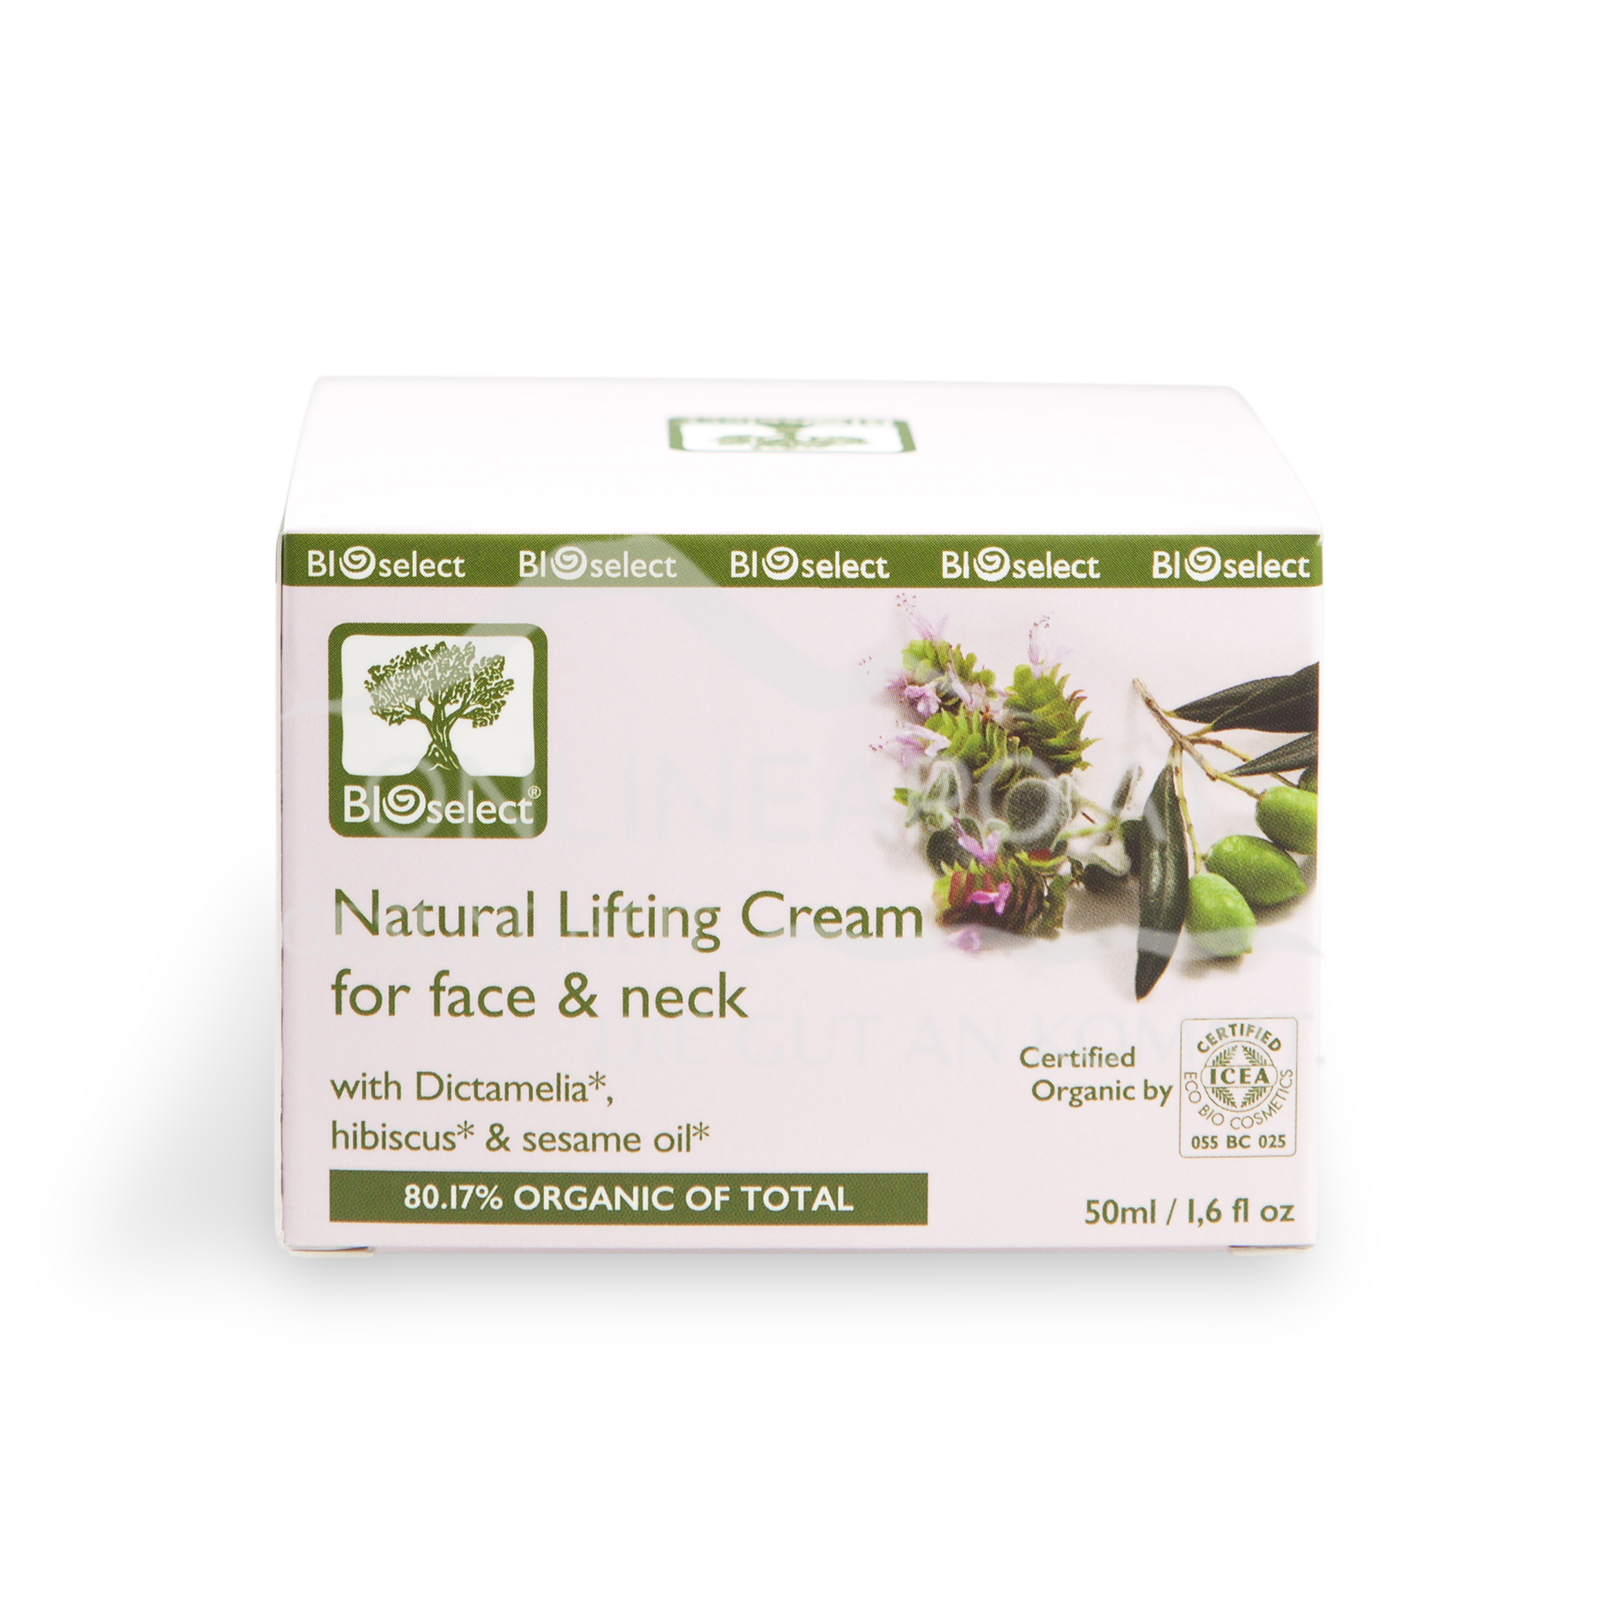 Bioselect Natural Lifting Cream for face & neck